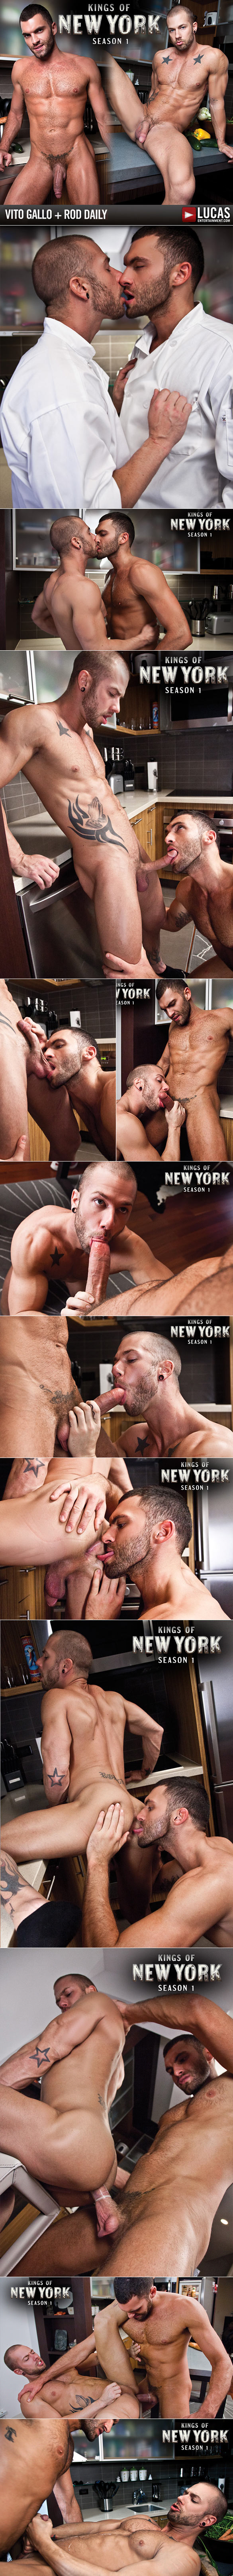 "LucasEntertainment: Rod Daily rides Vito Gallo's cock in ""Kings of New York, Season 1"""